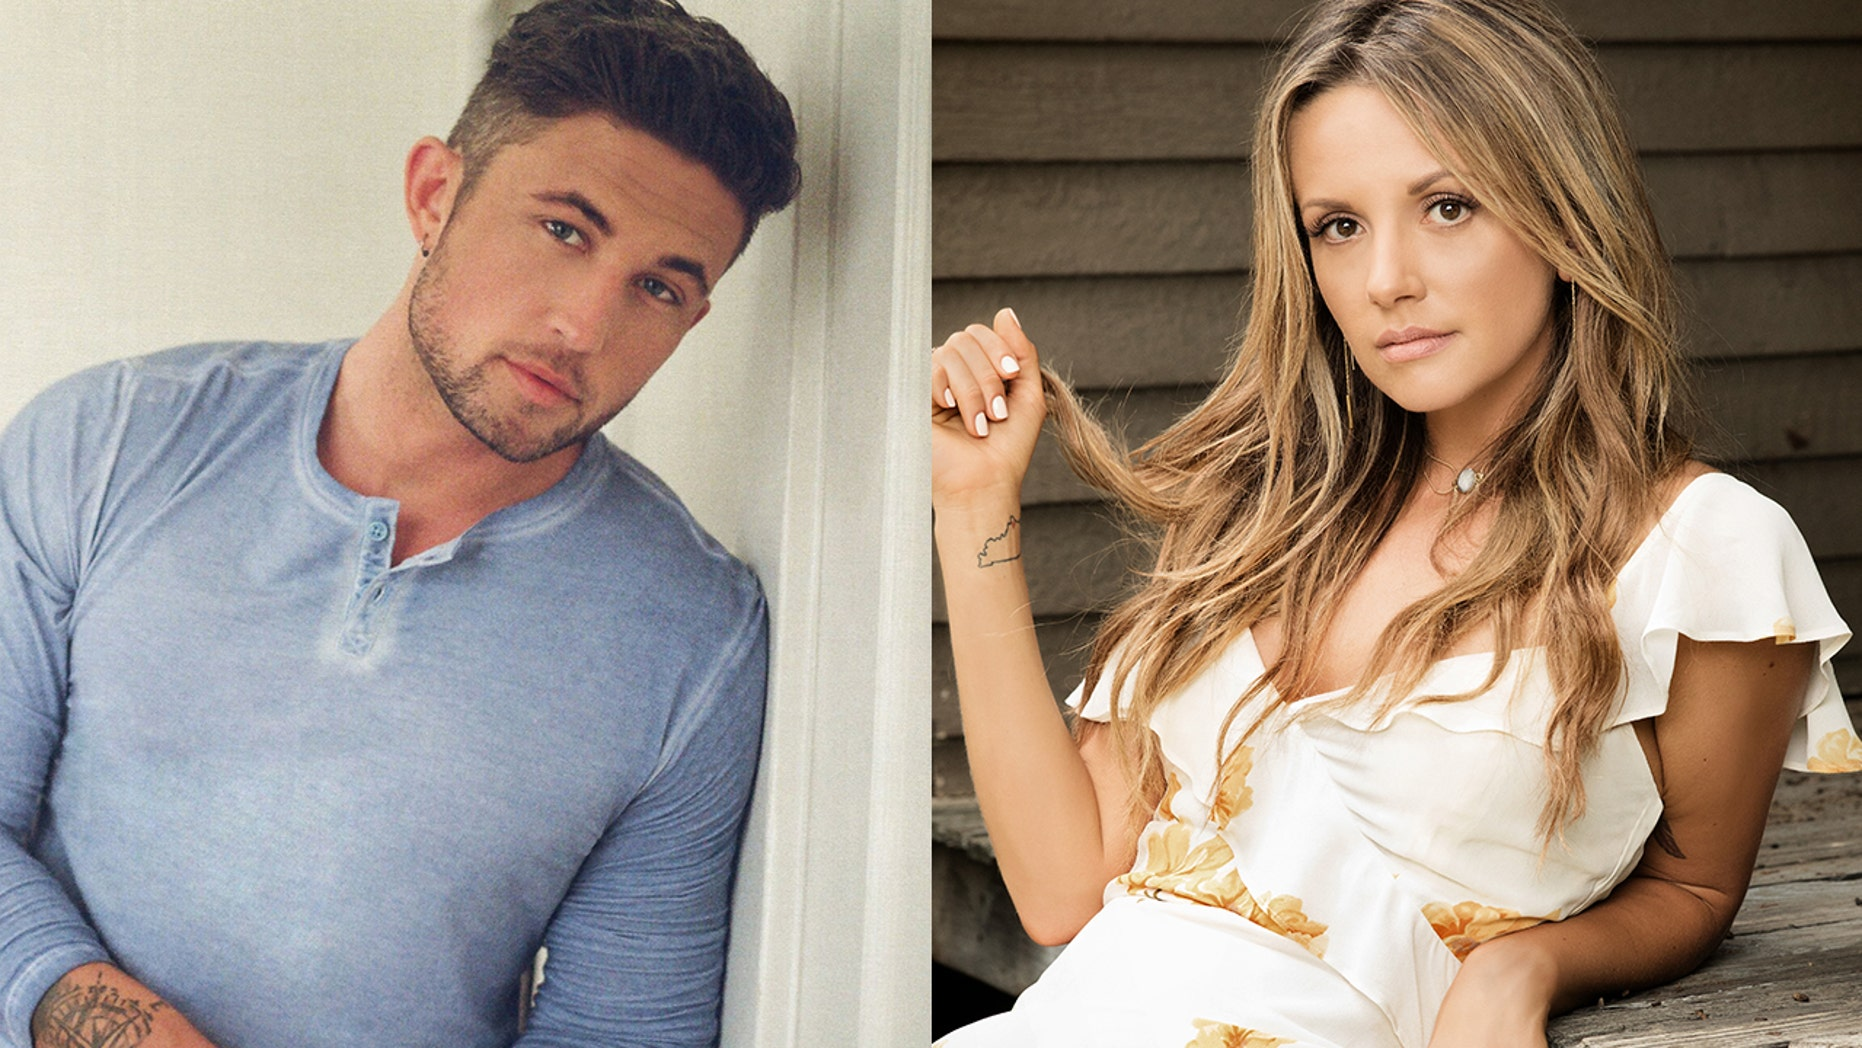 Michael ray dating carly pearce